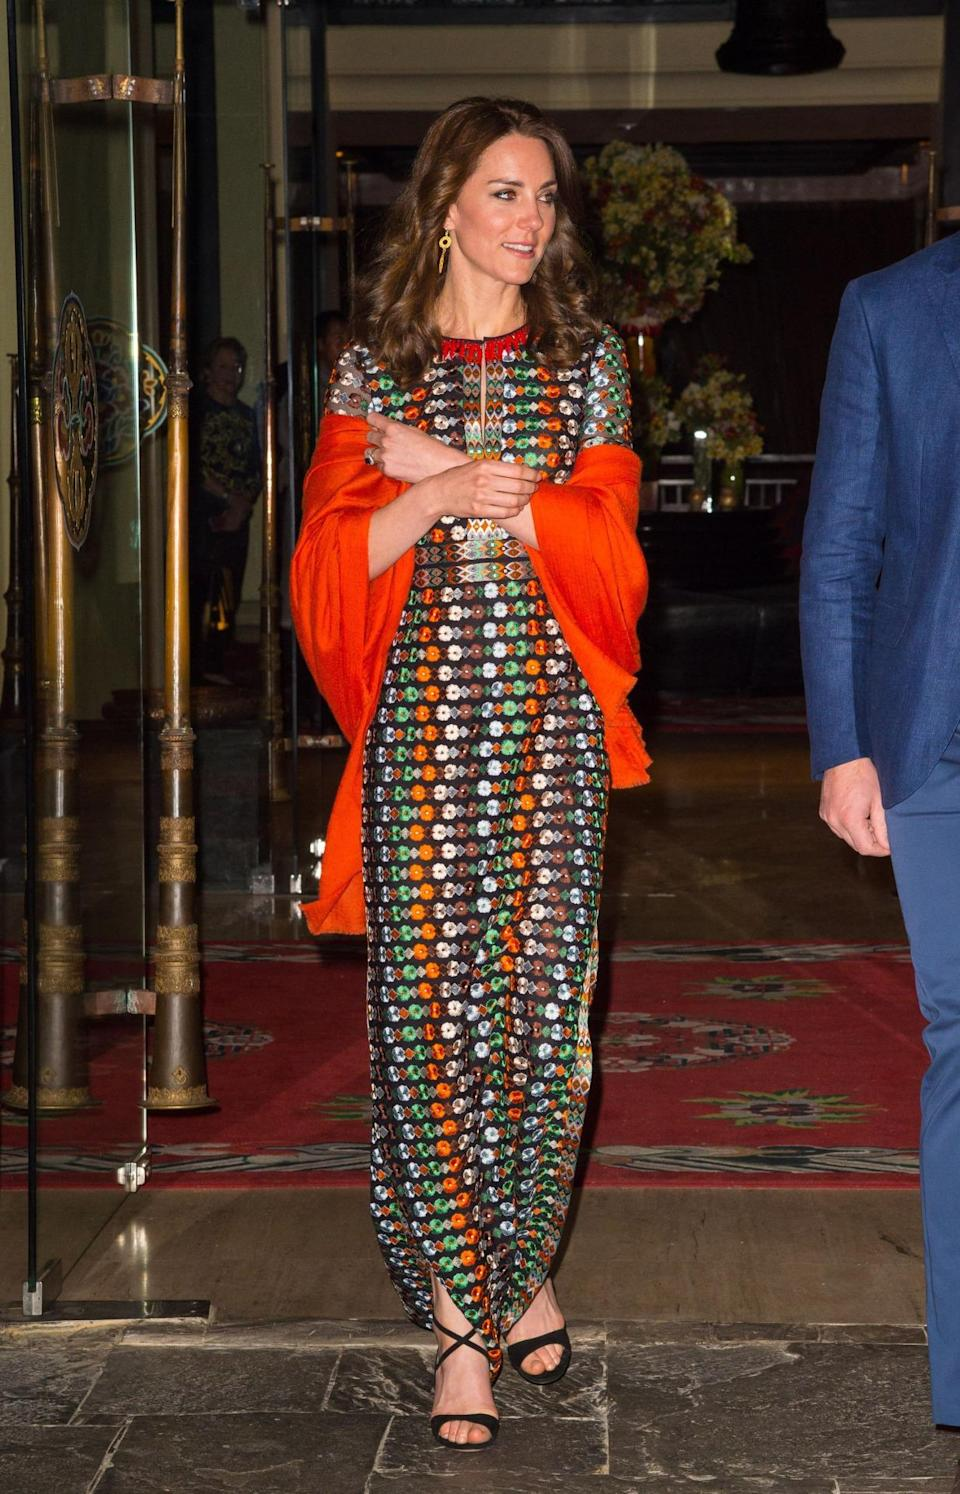 <p>Kate and William attended a dinner with the King and Queen of Bhutan. Kate wore a retro floral gown by Tory Burch paired with a vibrant shawl and black Gianvito Rossi sandals. </p><p><i>[Photo: PA]</i></p>